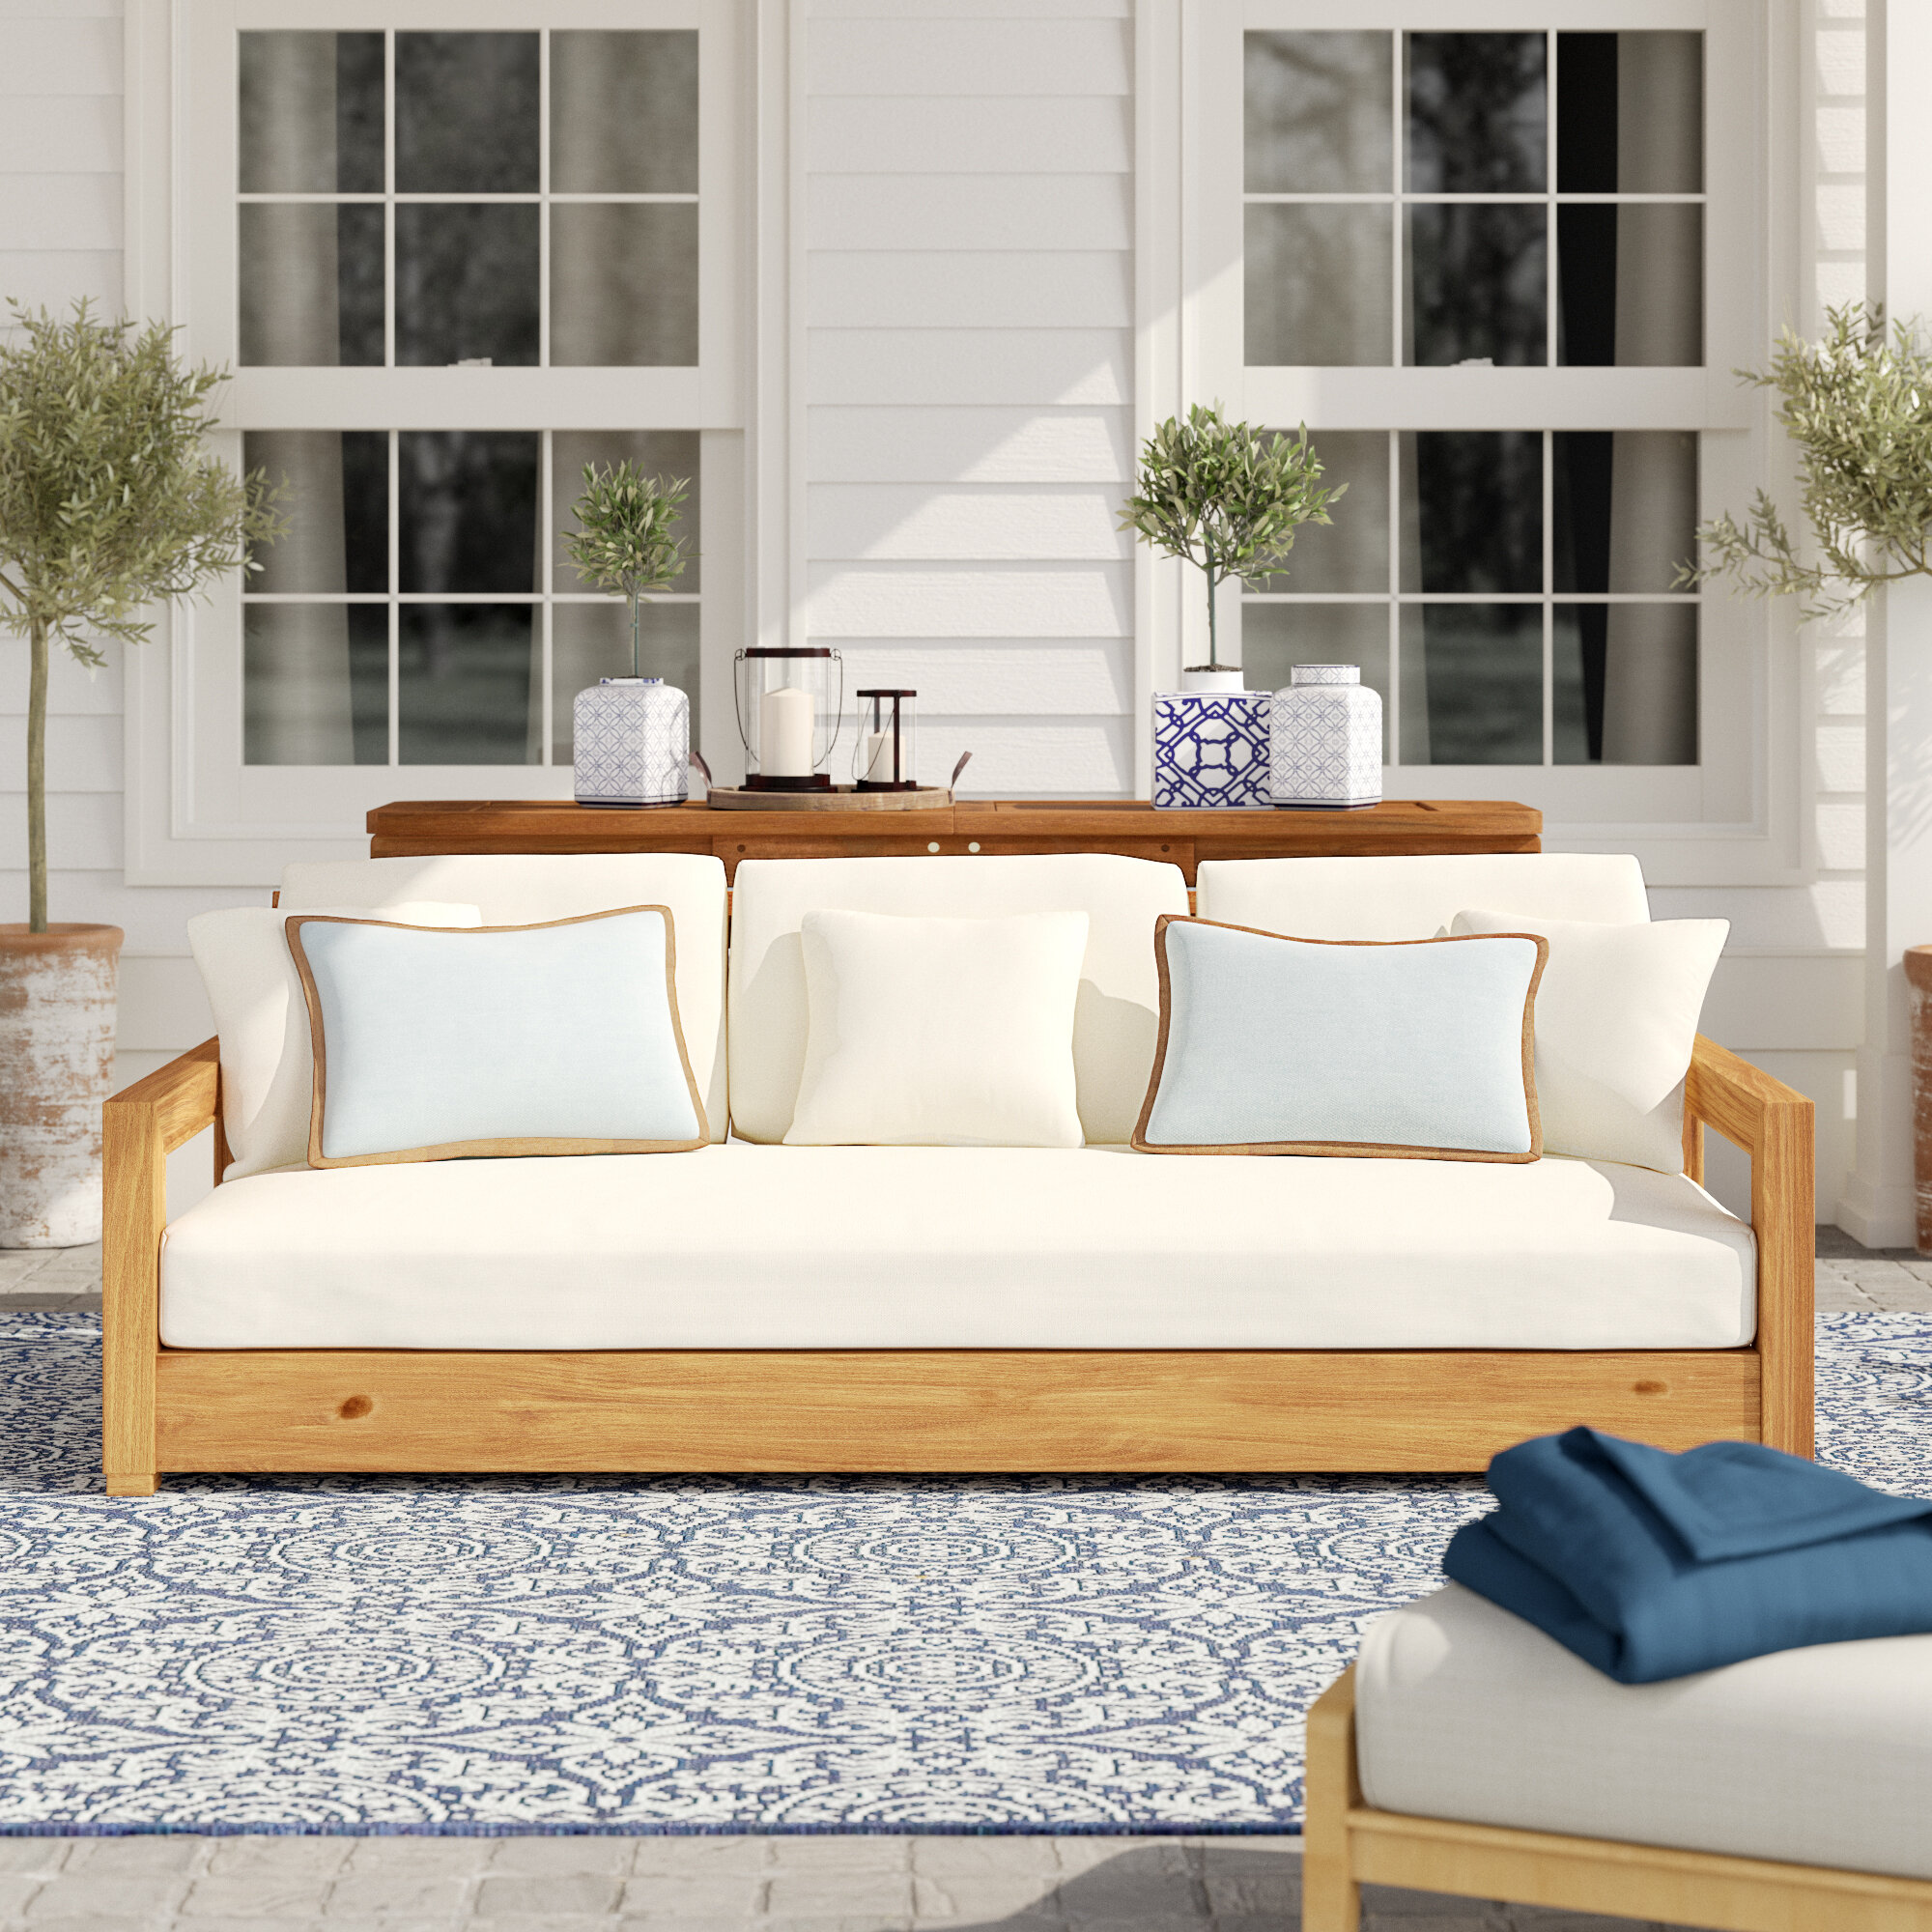 Tremendous Rosecliff Heights Lakeland Teak Patio Sofa With Cushions Alphanode Cool Chair Designs And Ideas Alphanodeonline